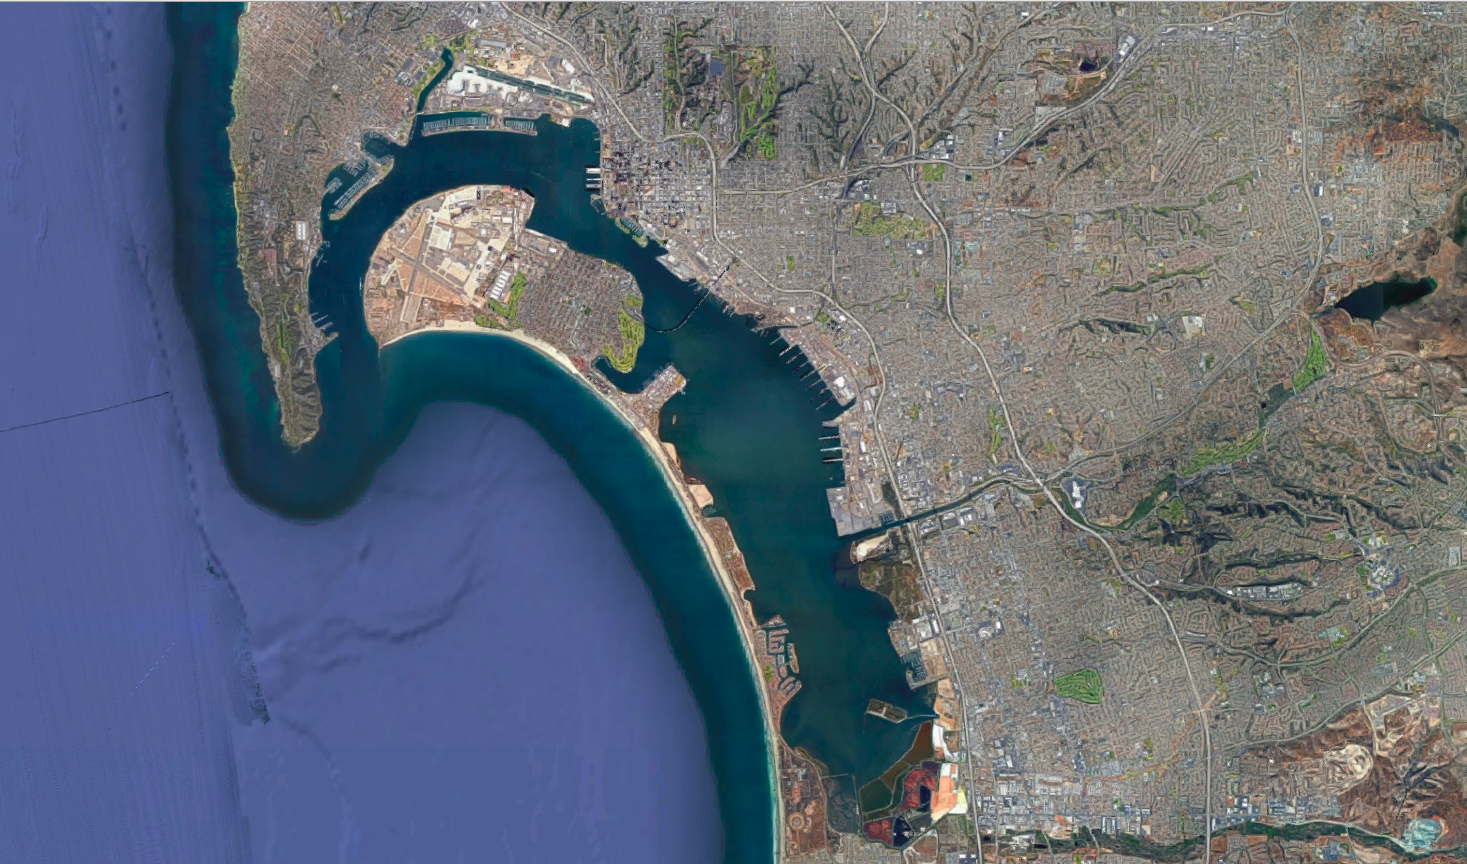 This is pulled from Google Maps. The similarity is incredible!